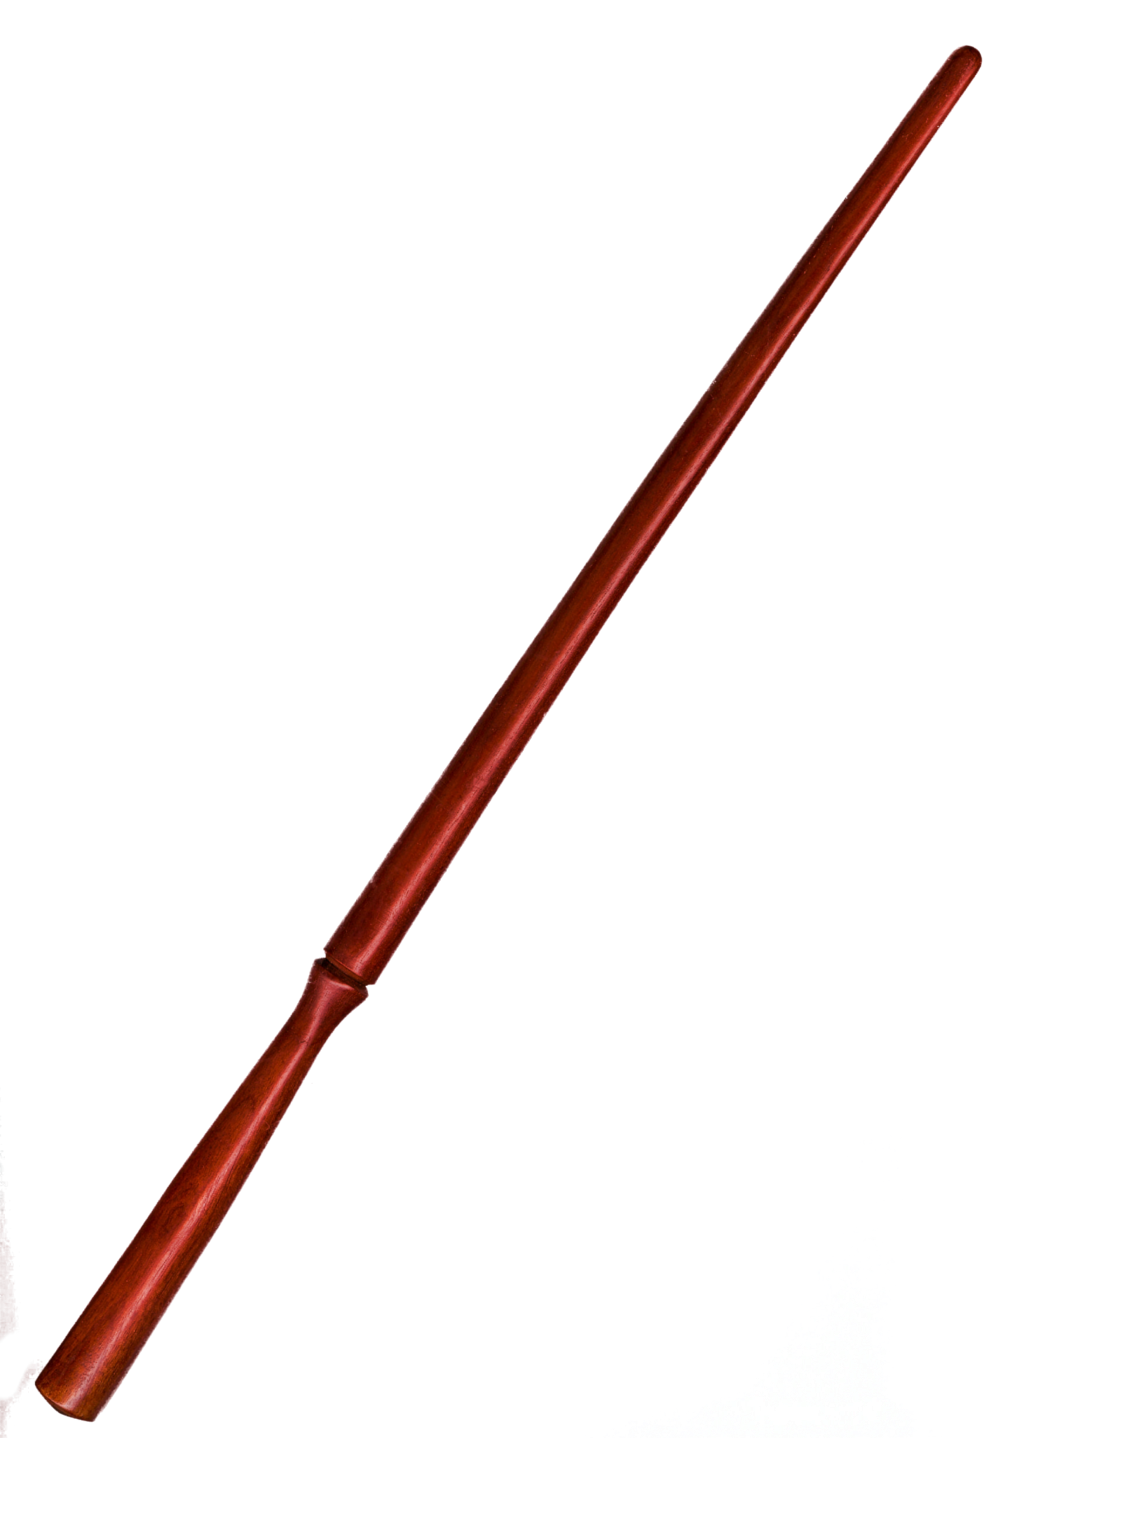 PNG Wand - 54079